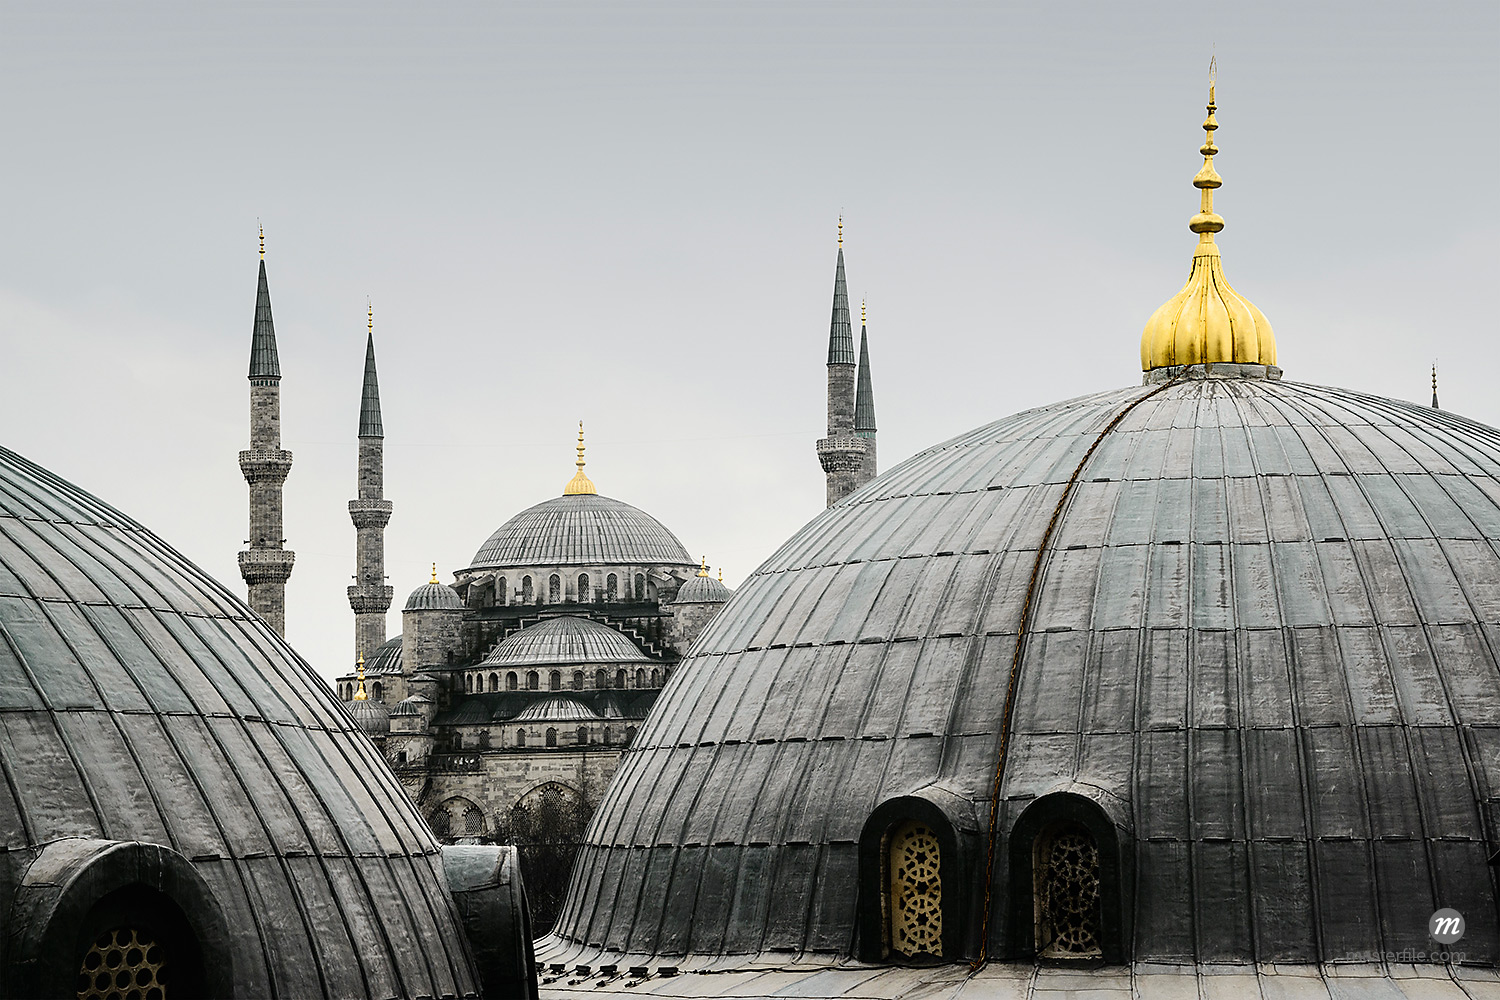 Turkey, Marmara, Istanbul, Blue Mosque, Sultan Ahmed Mosque, Close-Up of Rooftop Domes  © Siephoto / Masterfile